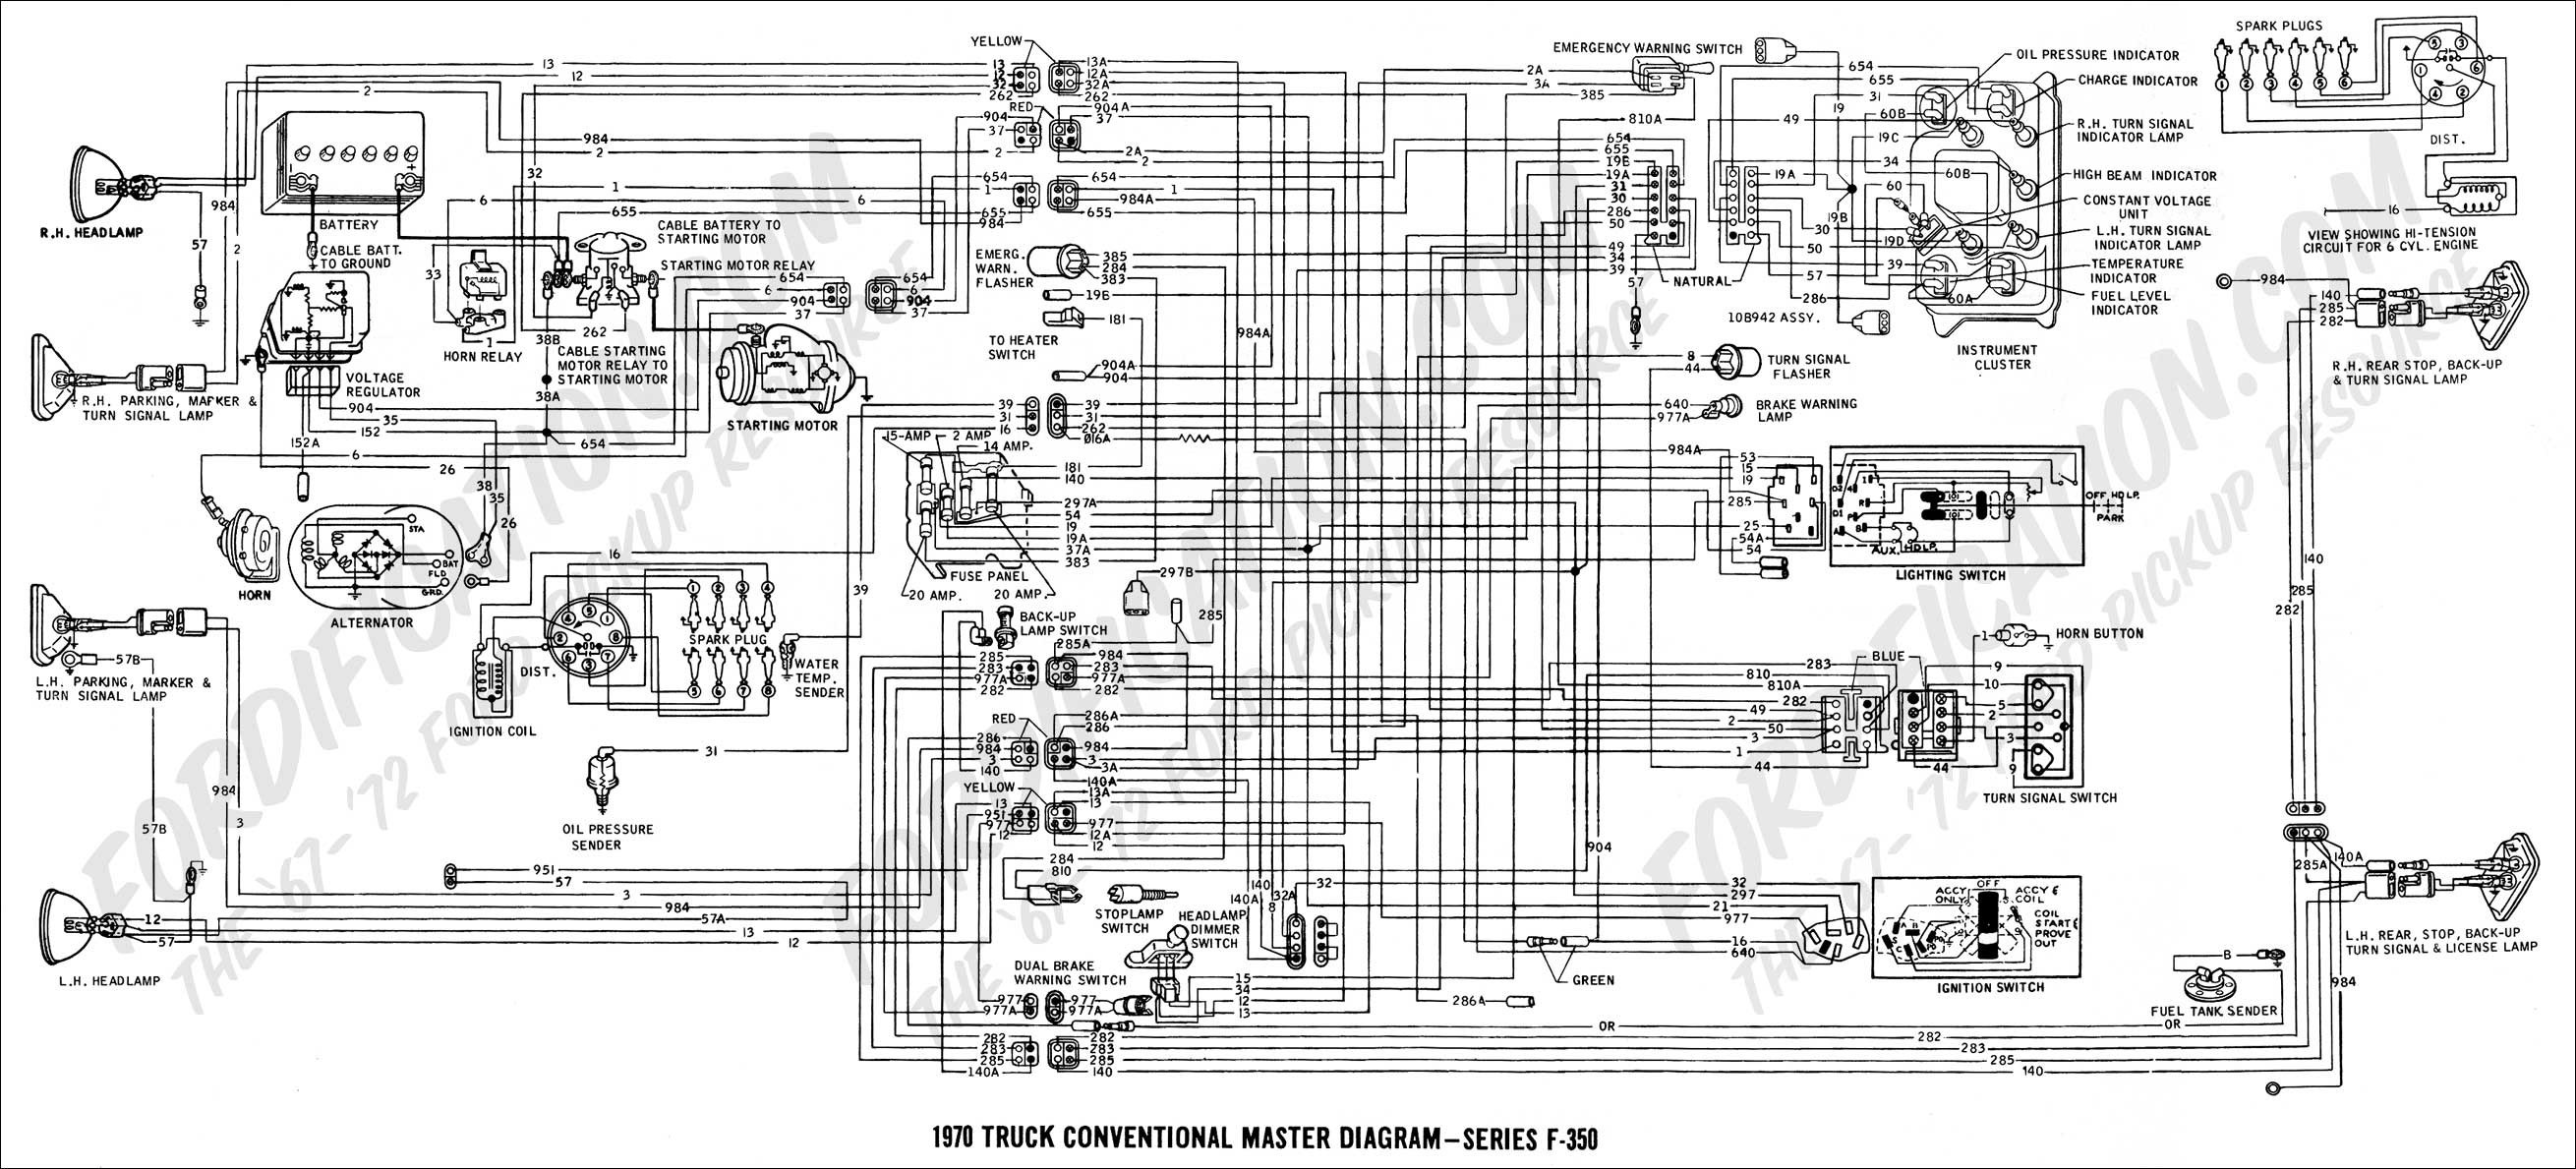 Trailer Light Harness Diagram Inspirational Wiring Diagram for ...